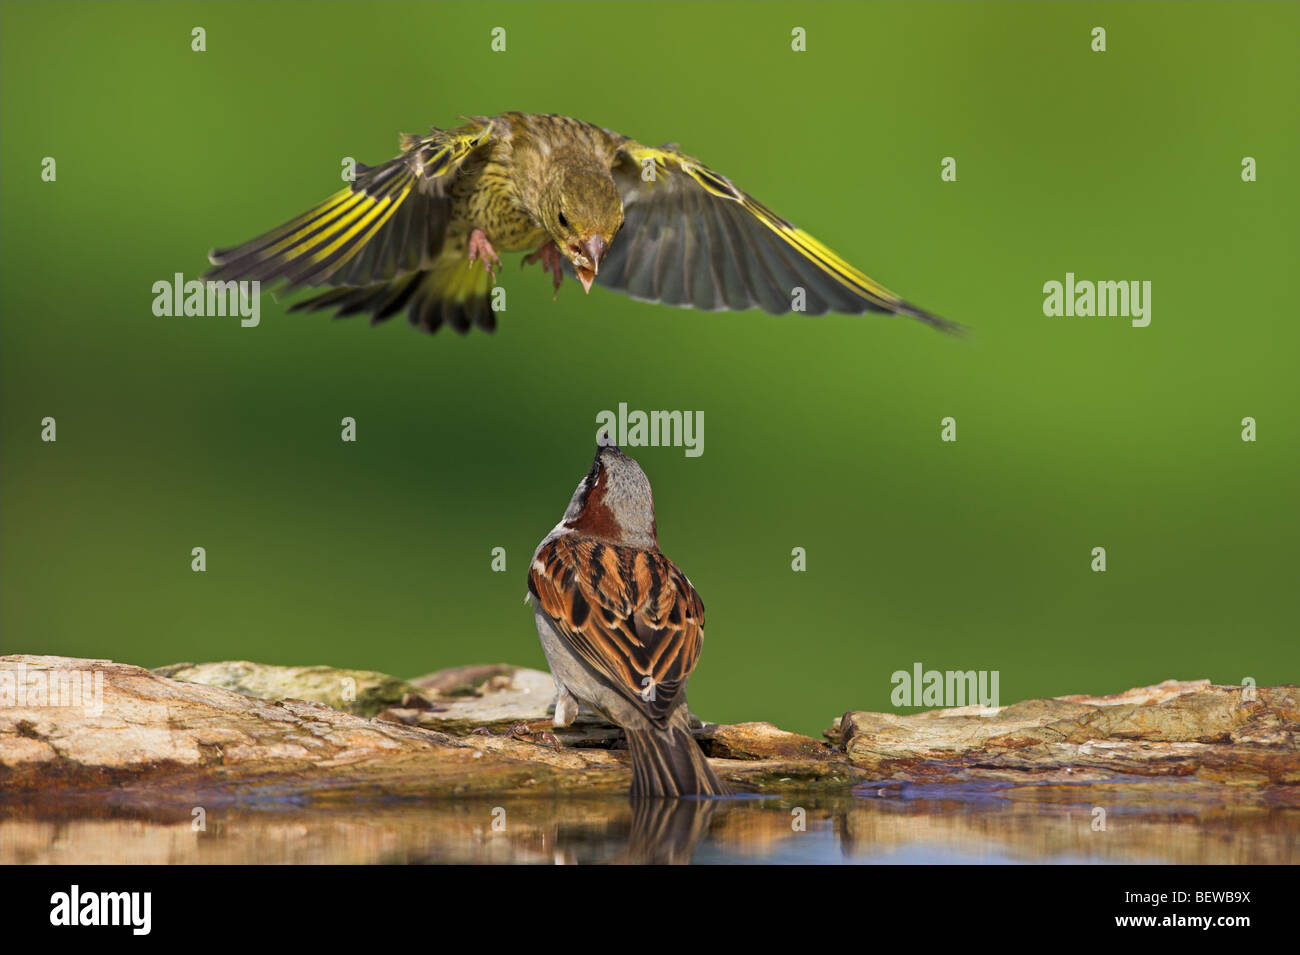 European Greenfinch (Carduelis chloris) attacking Sparrow (Passer) from the air, close-up Stock Photo